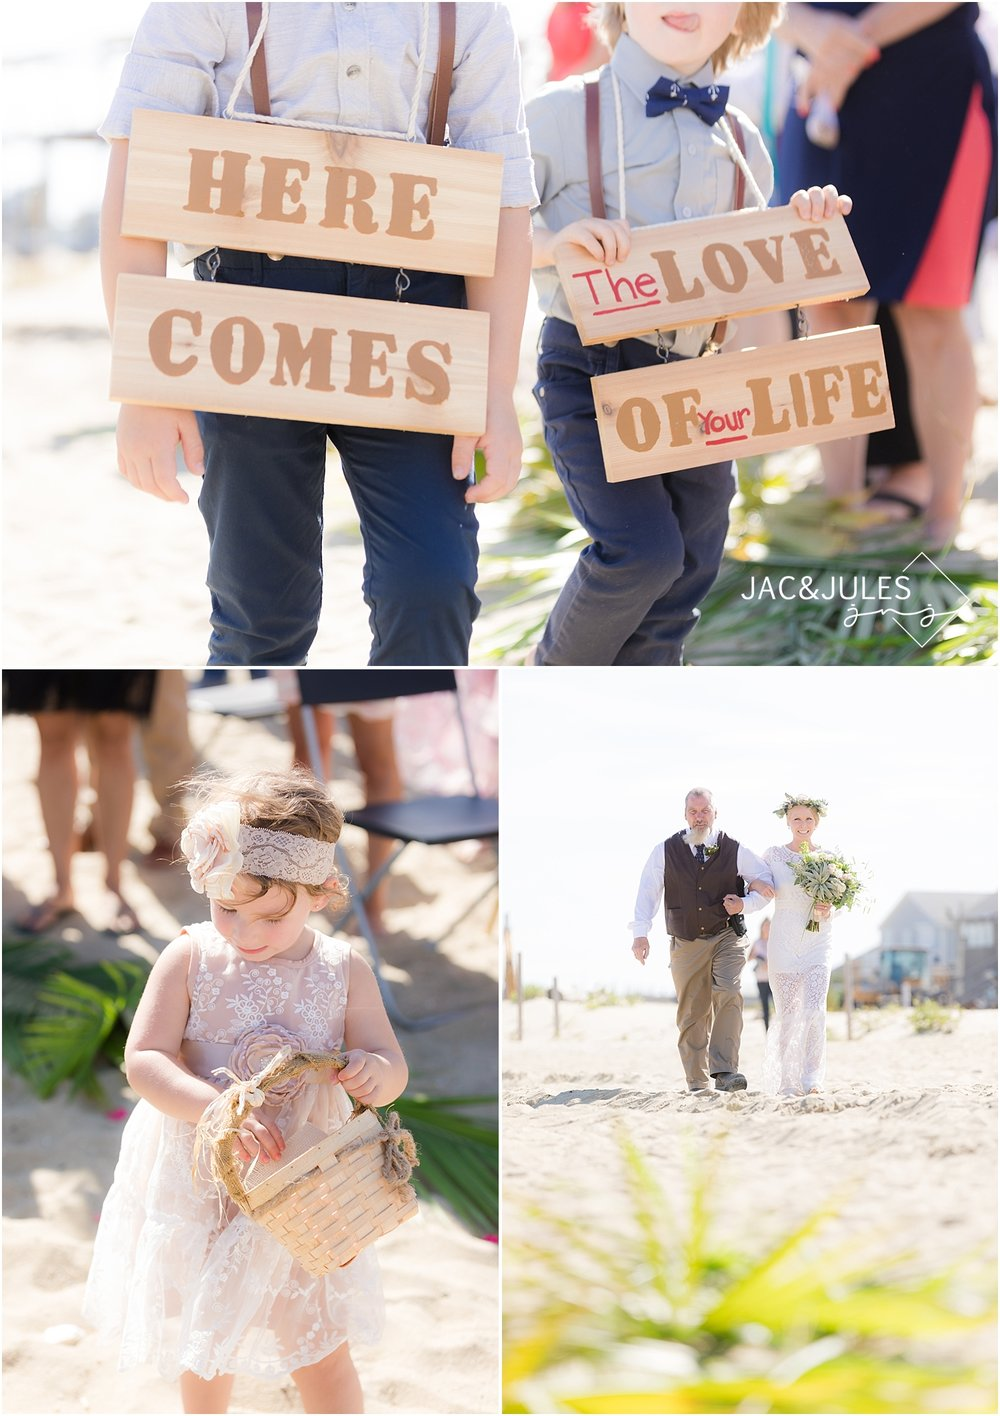 Sea Girt Beach Wedding Ceremony Photo by jacnjules